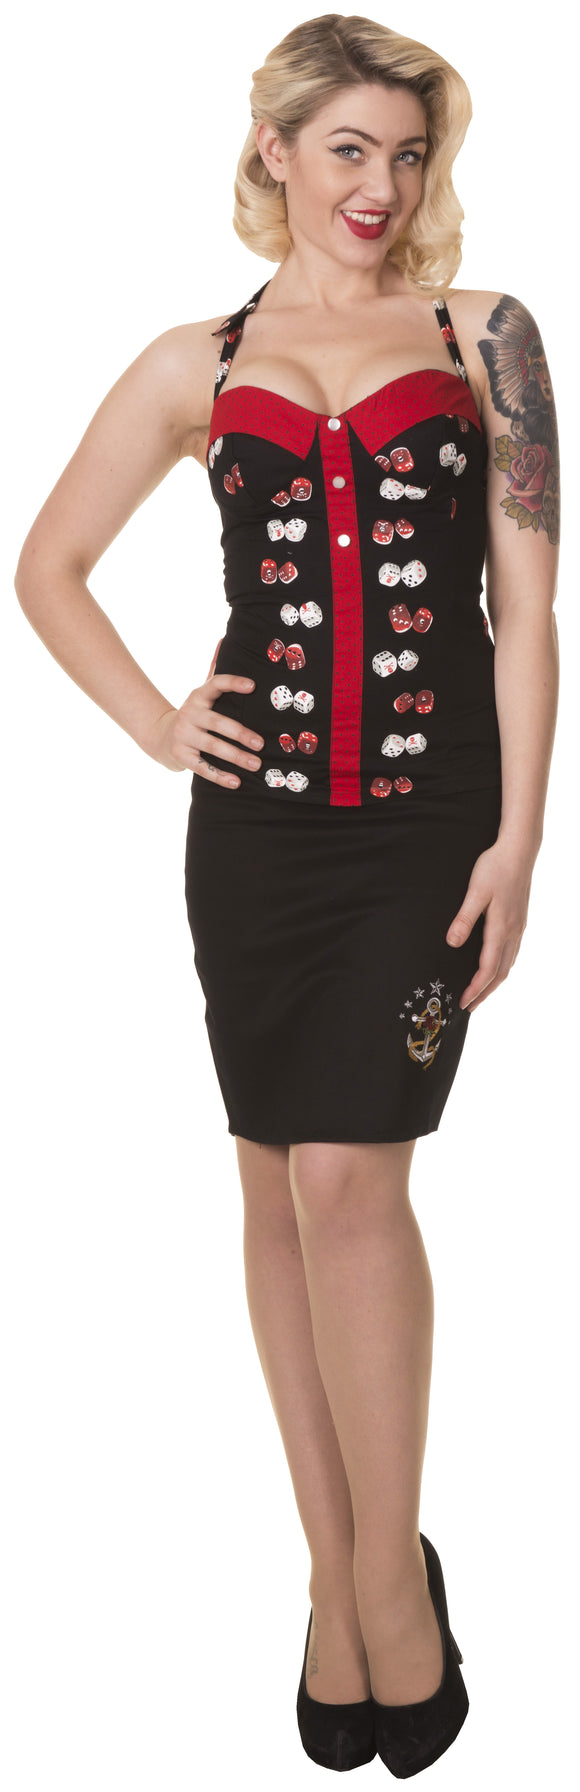 Dead Threads - Women's Black and Red Dice Top